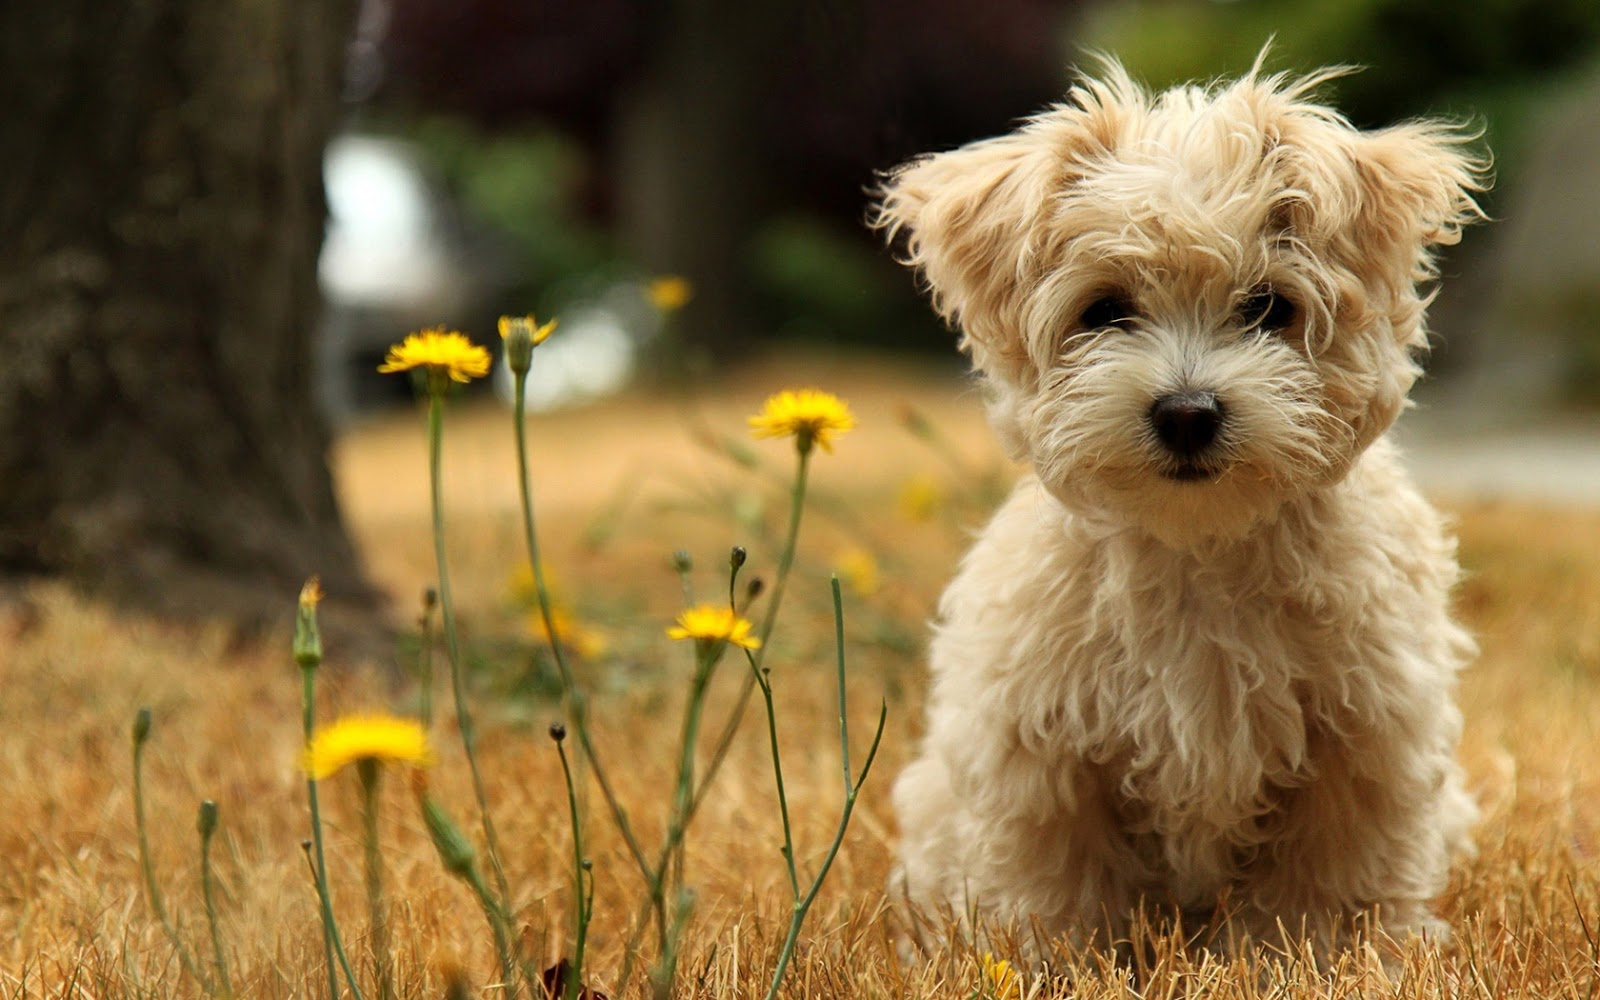 Cute Puppies HD Wallpapers HD Wallpapers 360 1600x1000